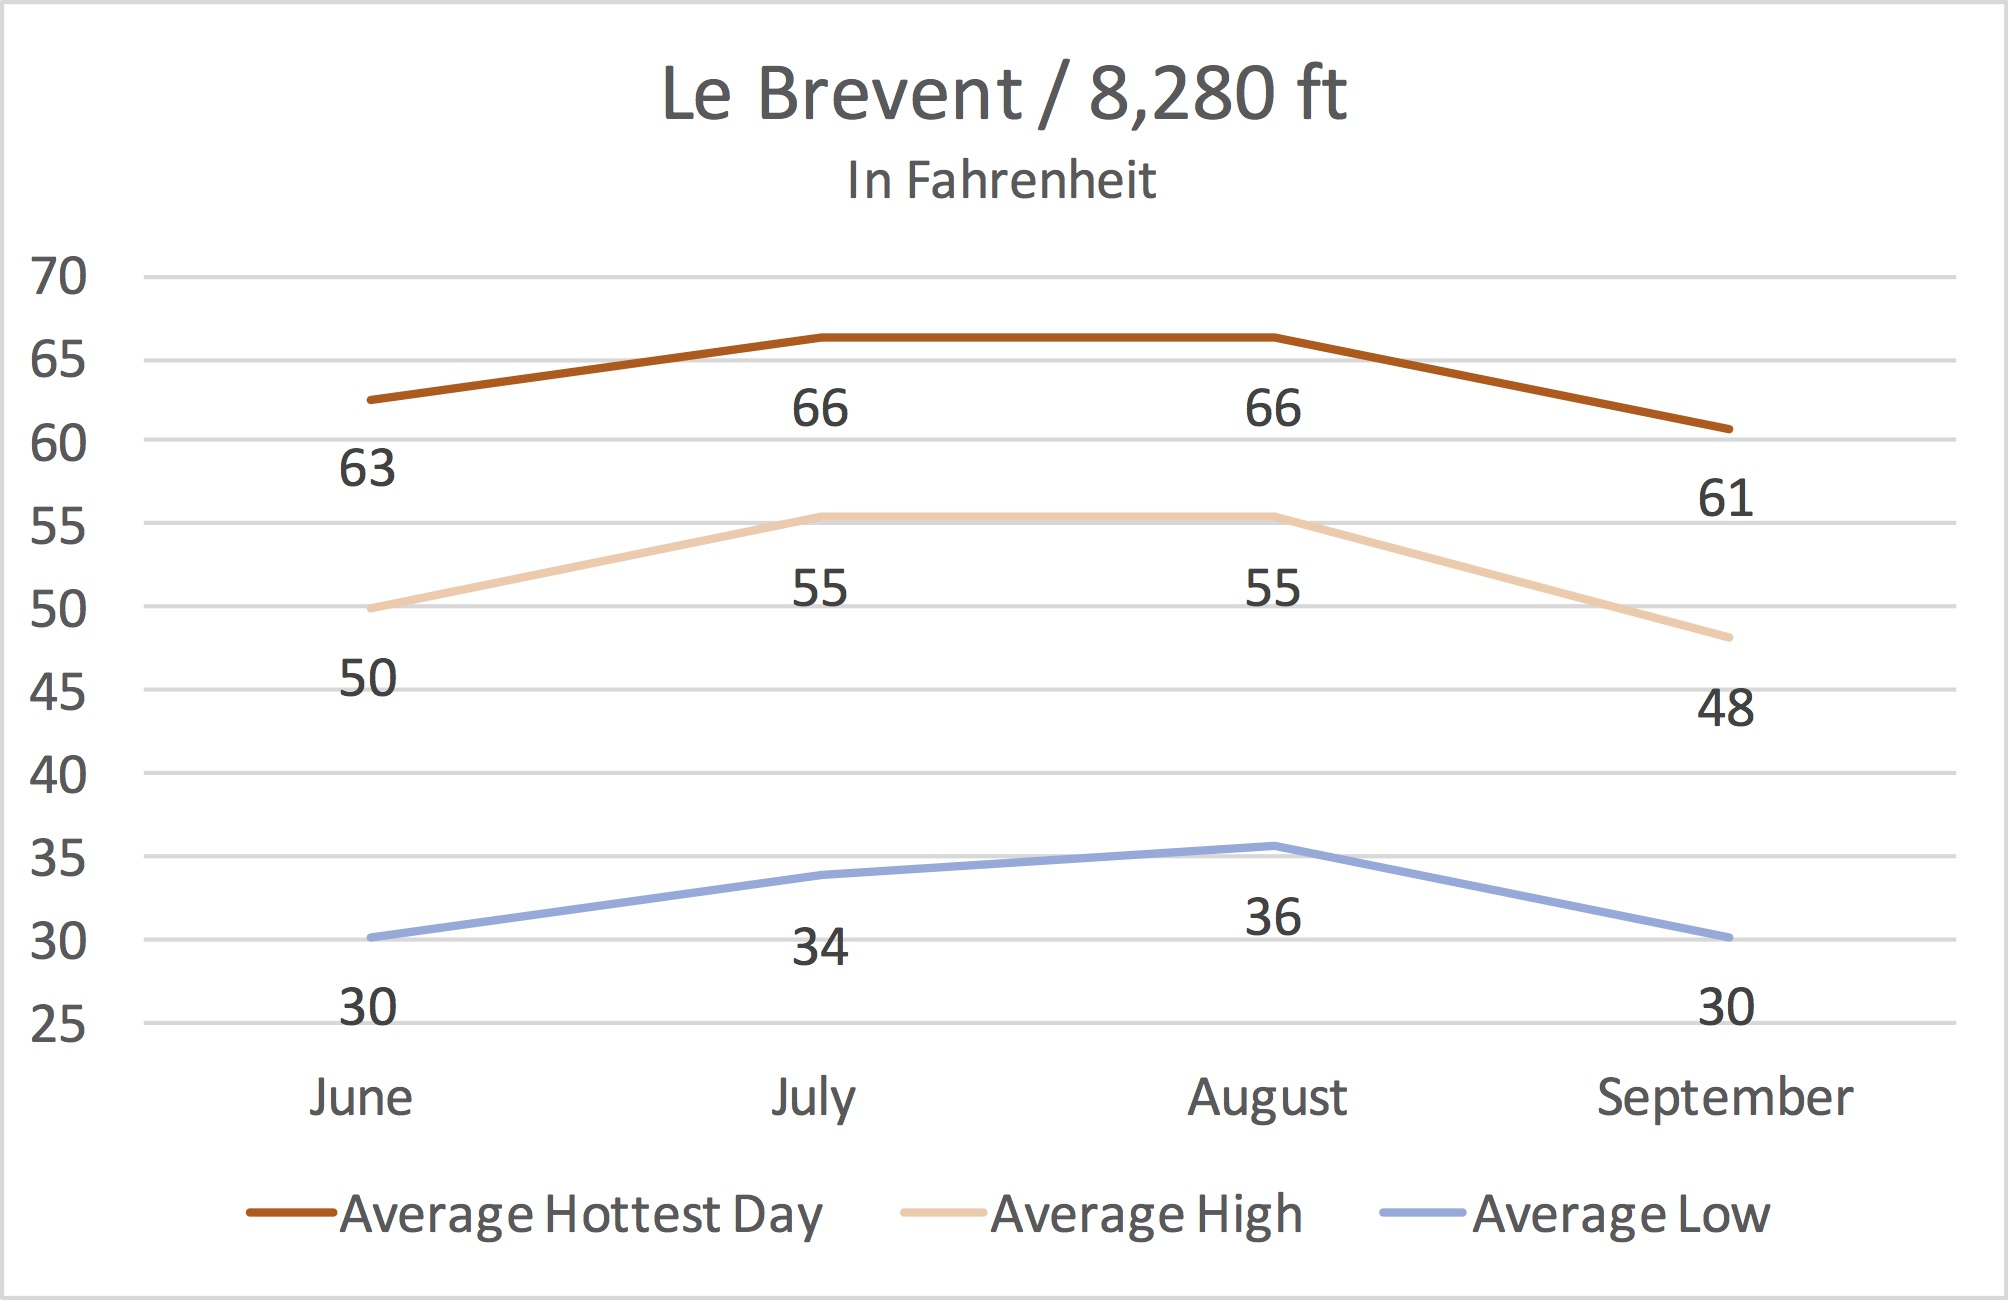 Le Brevent Average Temperature from June to September